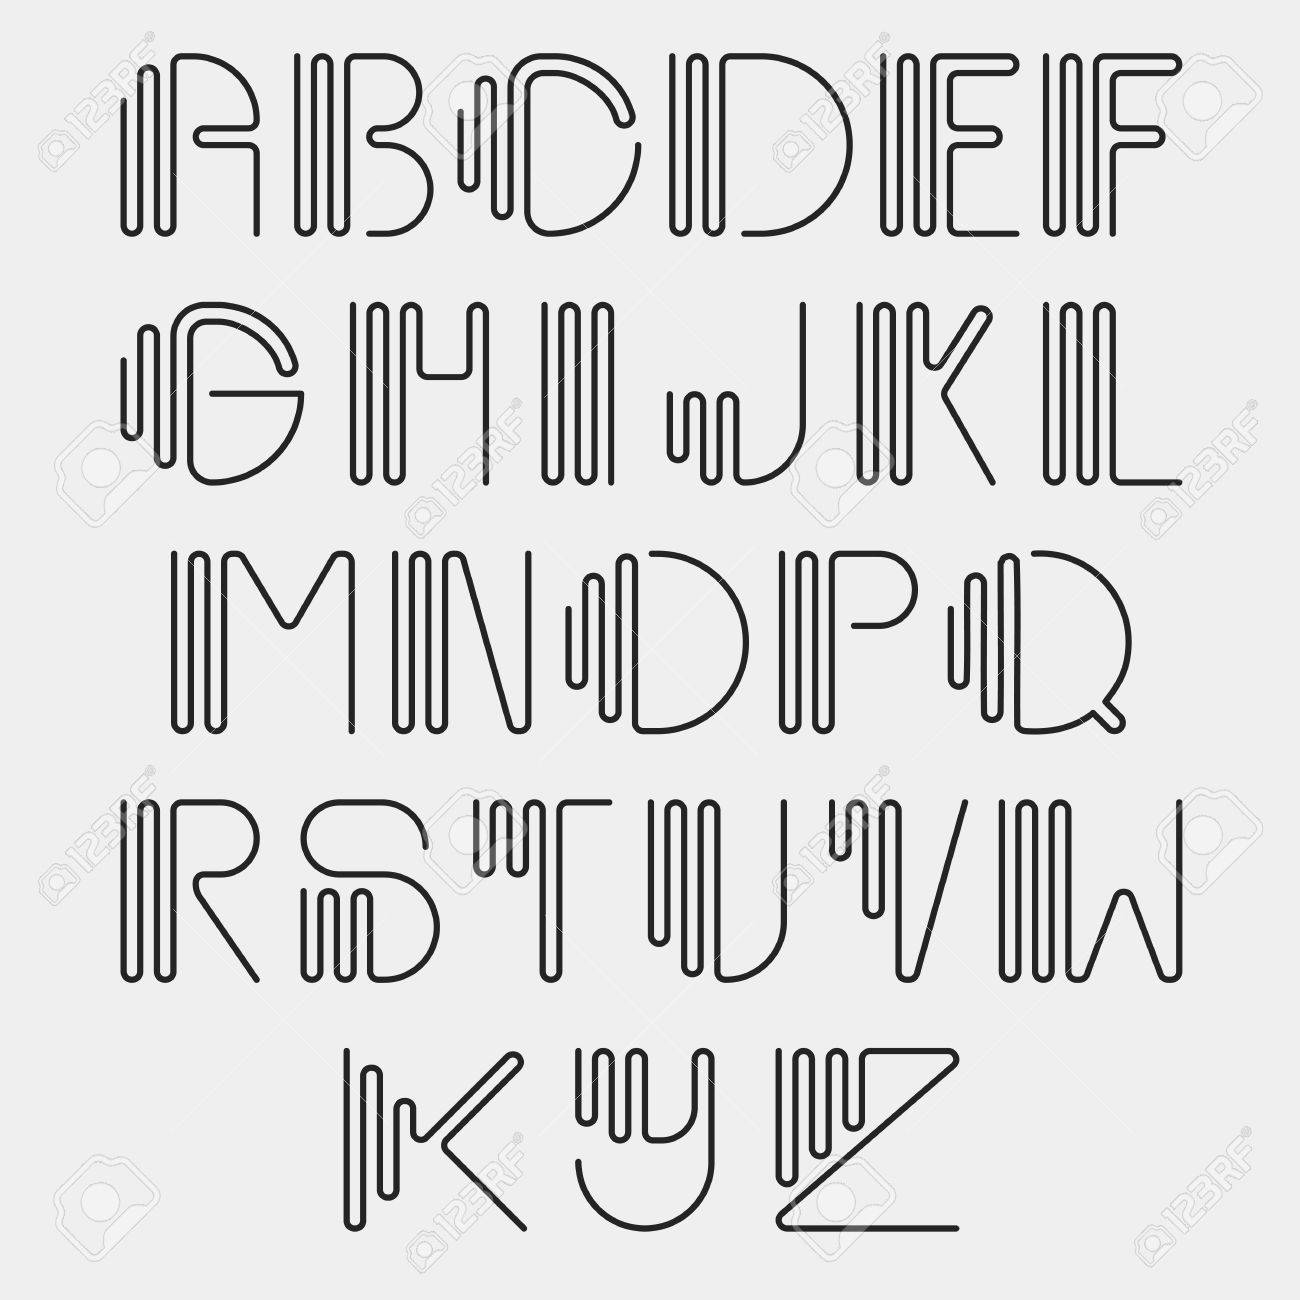 Original Curved Latin Alphabet Set Linear Uppercase Modern Font Typeface English Thin Black